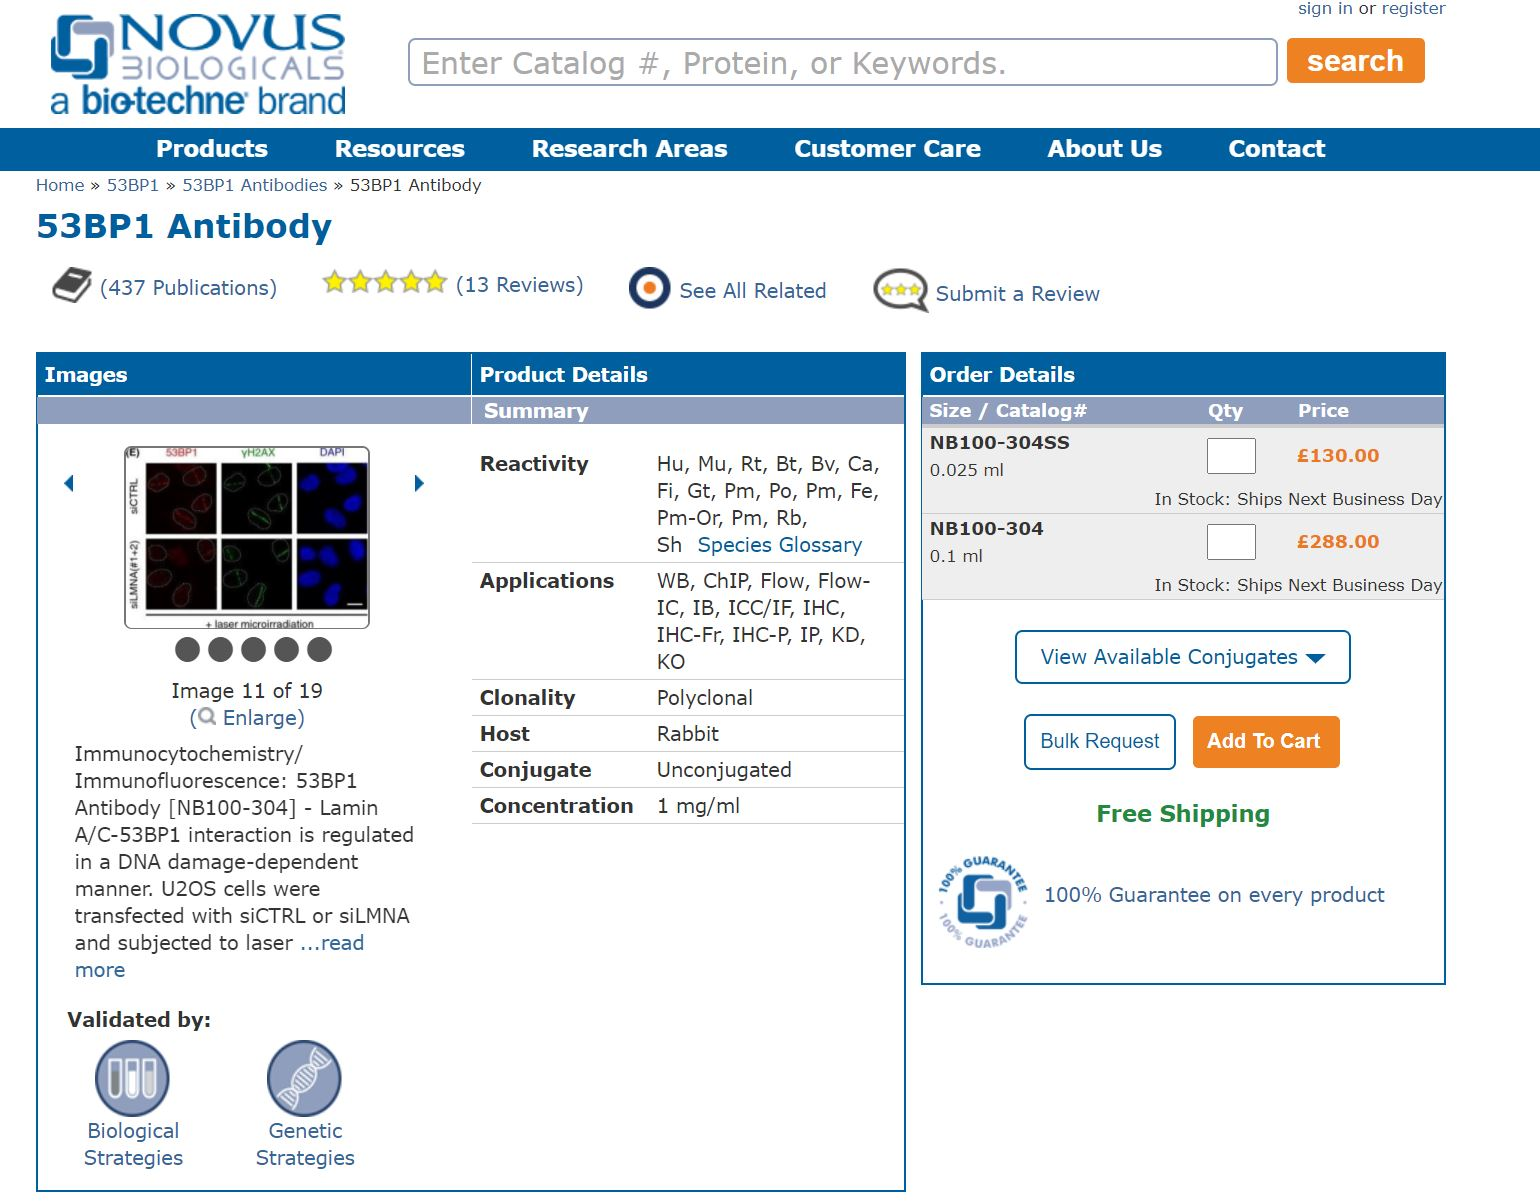 Example usage of the image widget by Novus Biologicals